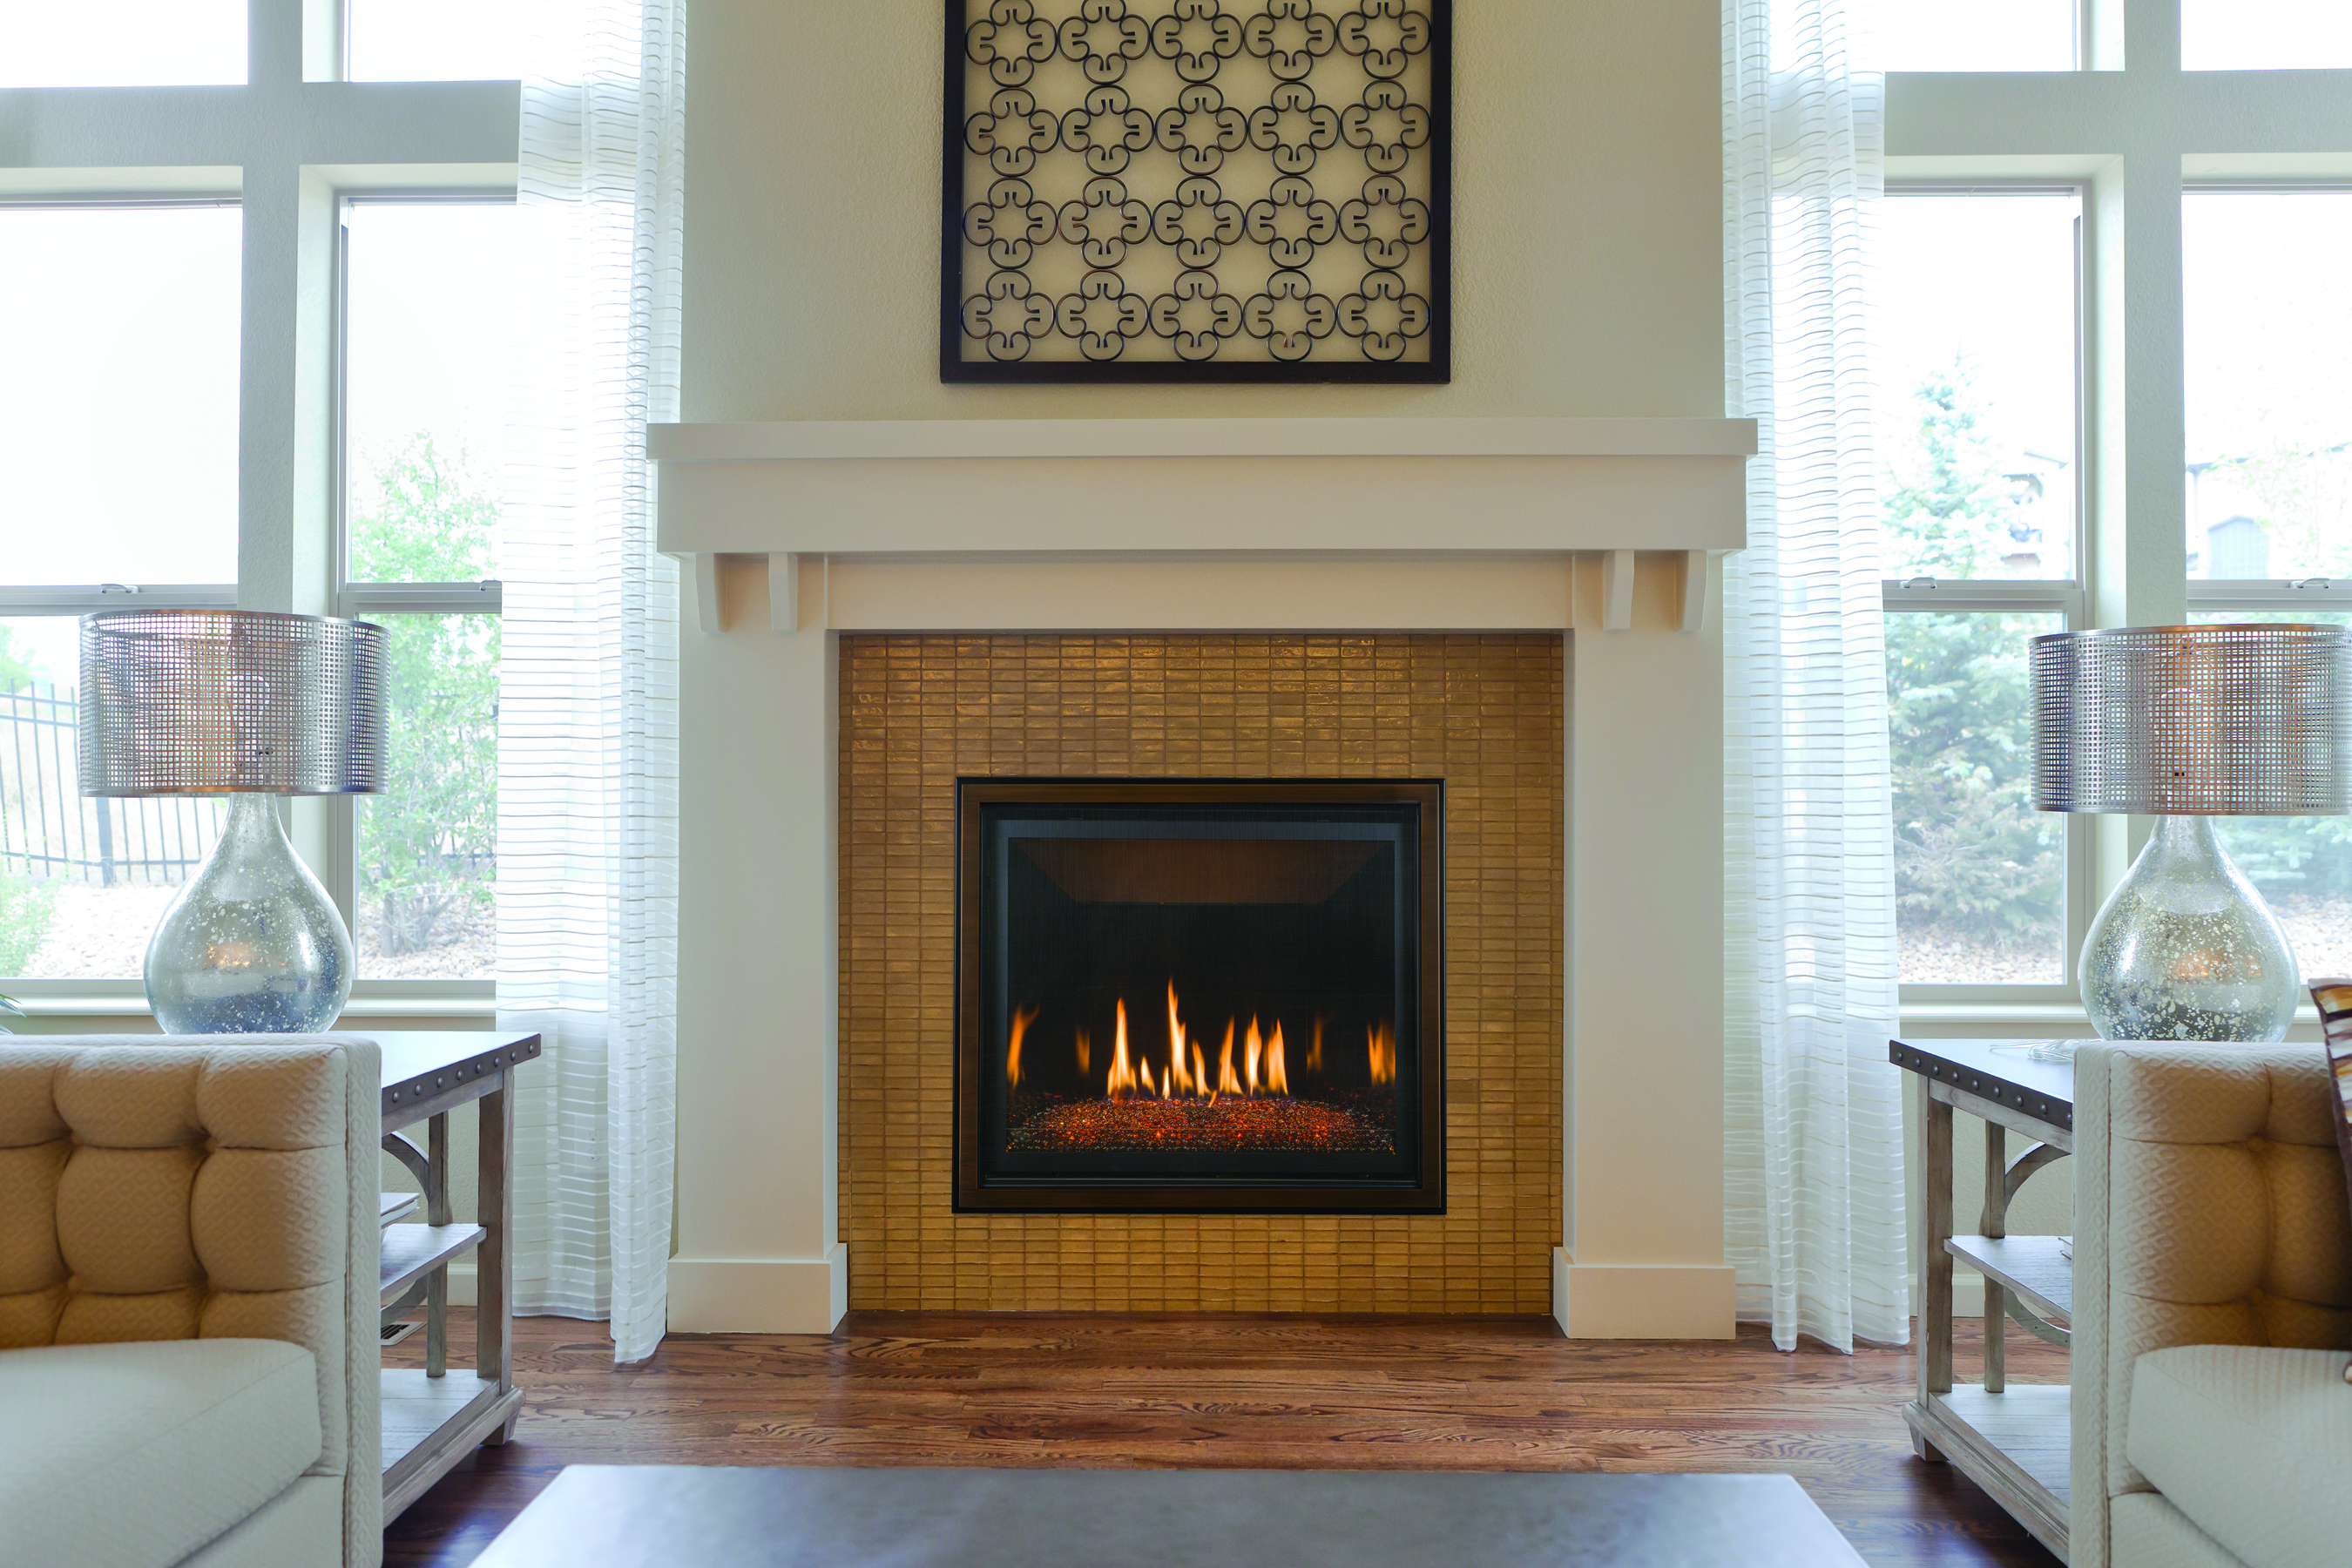 Image of the modern Bayport 36 gas fireplace made by KozyHeat featuring a rustic wood logset and old world brick fire backing.